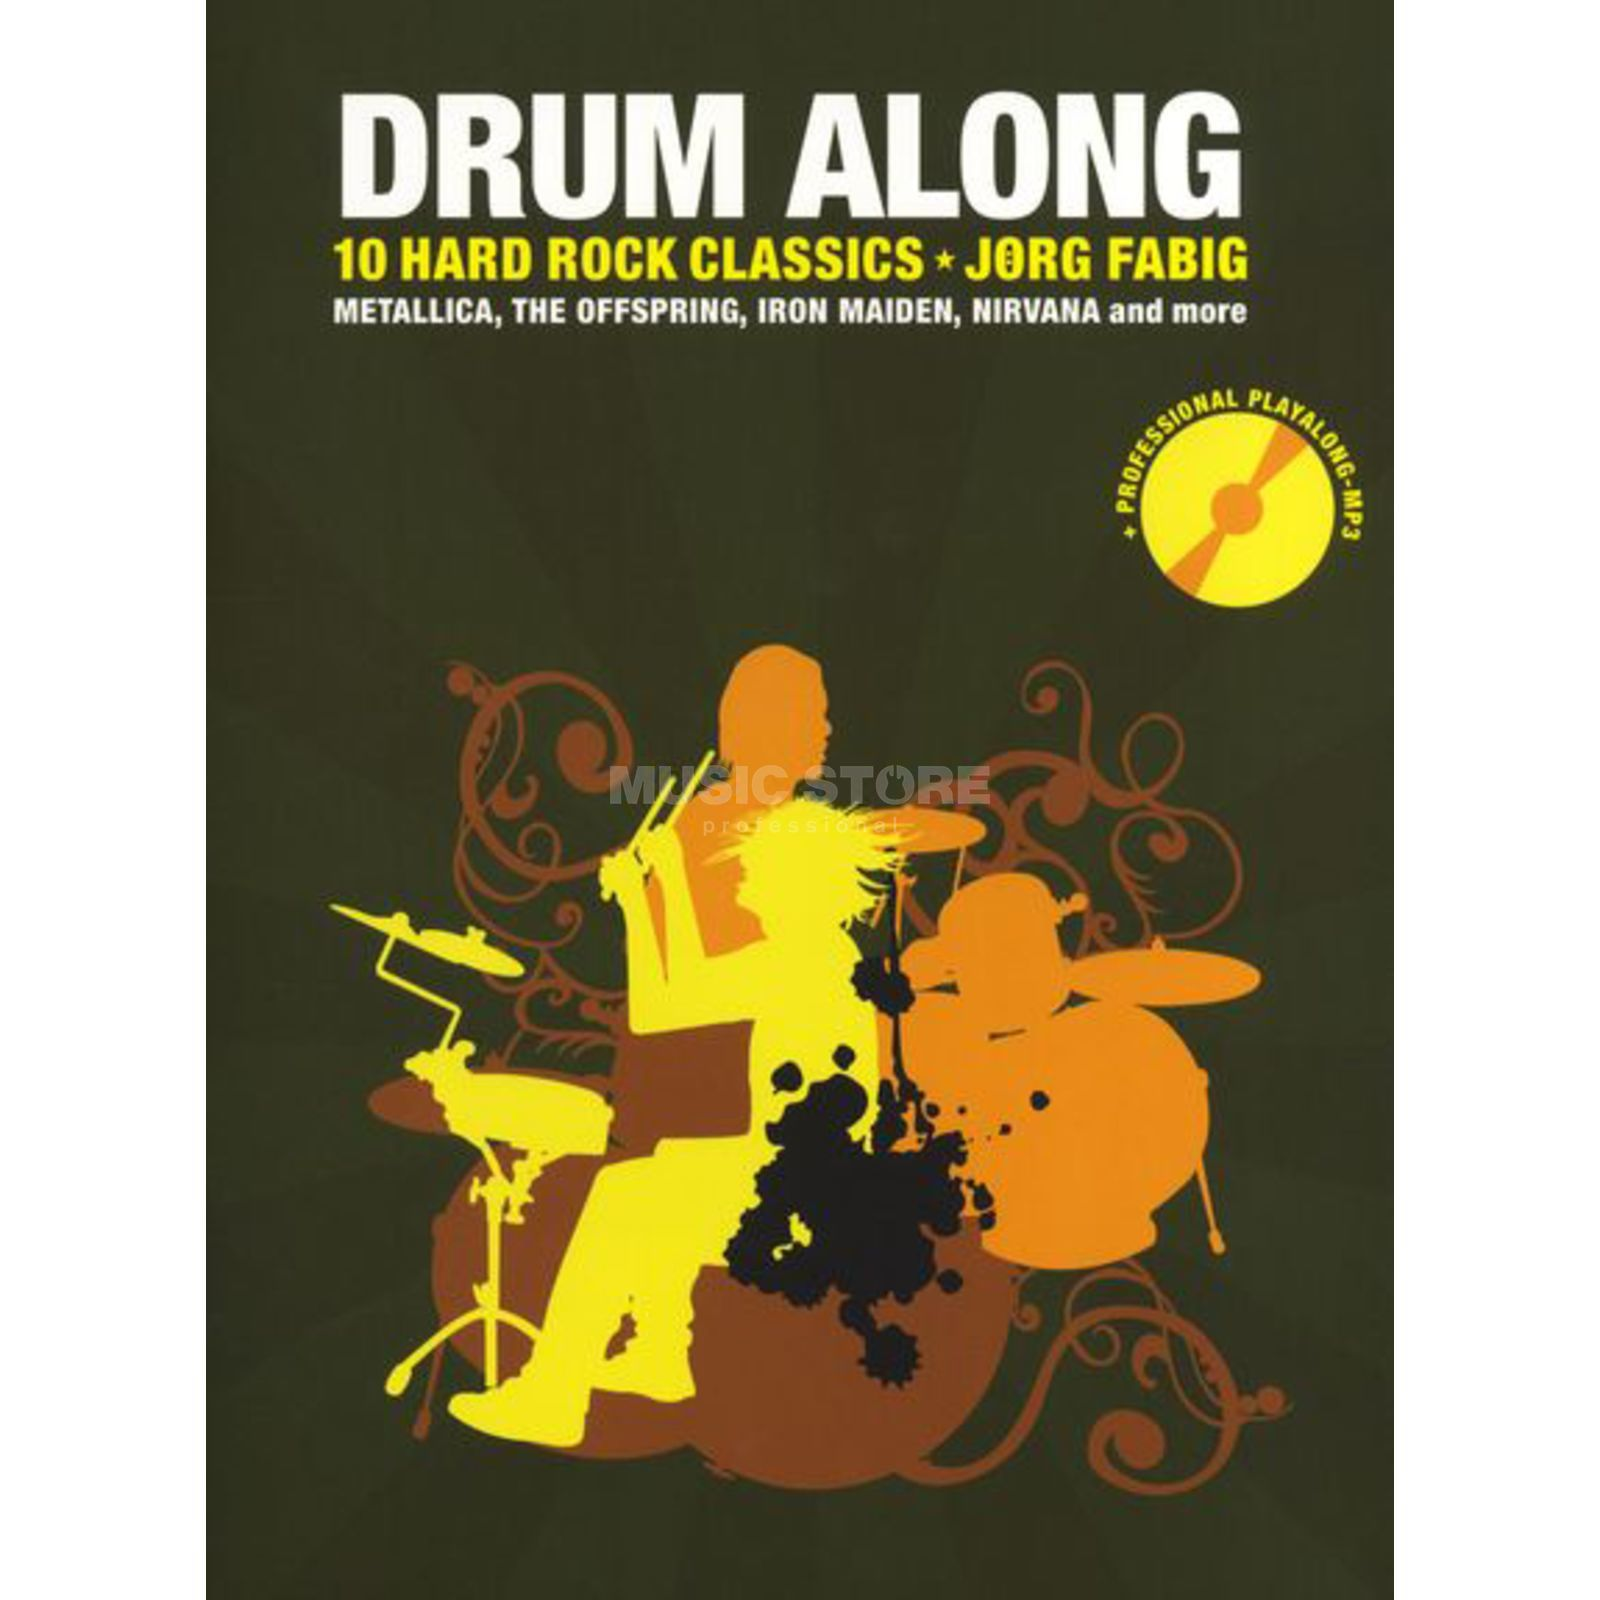 Bosworth Music Drum Along: 10 Hard Rock Classics, Jörg Fabig Produktbild